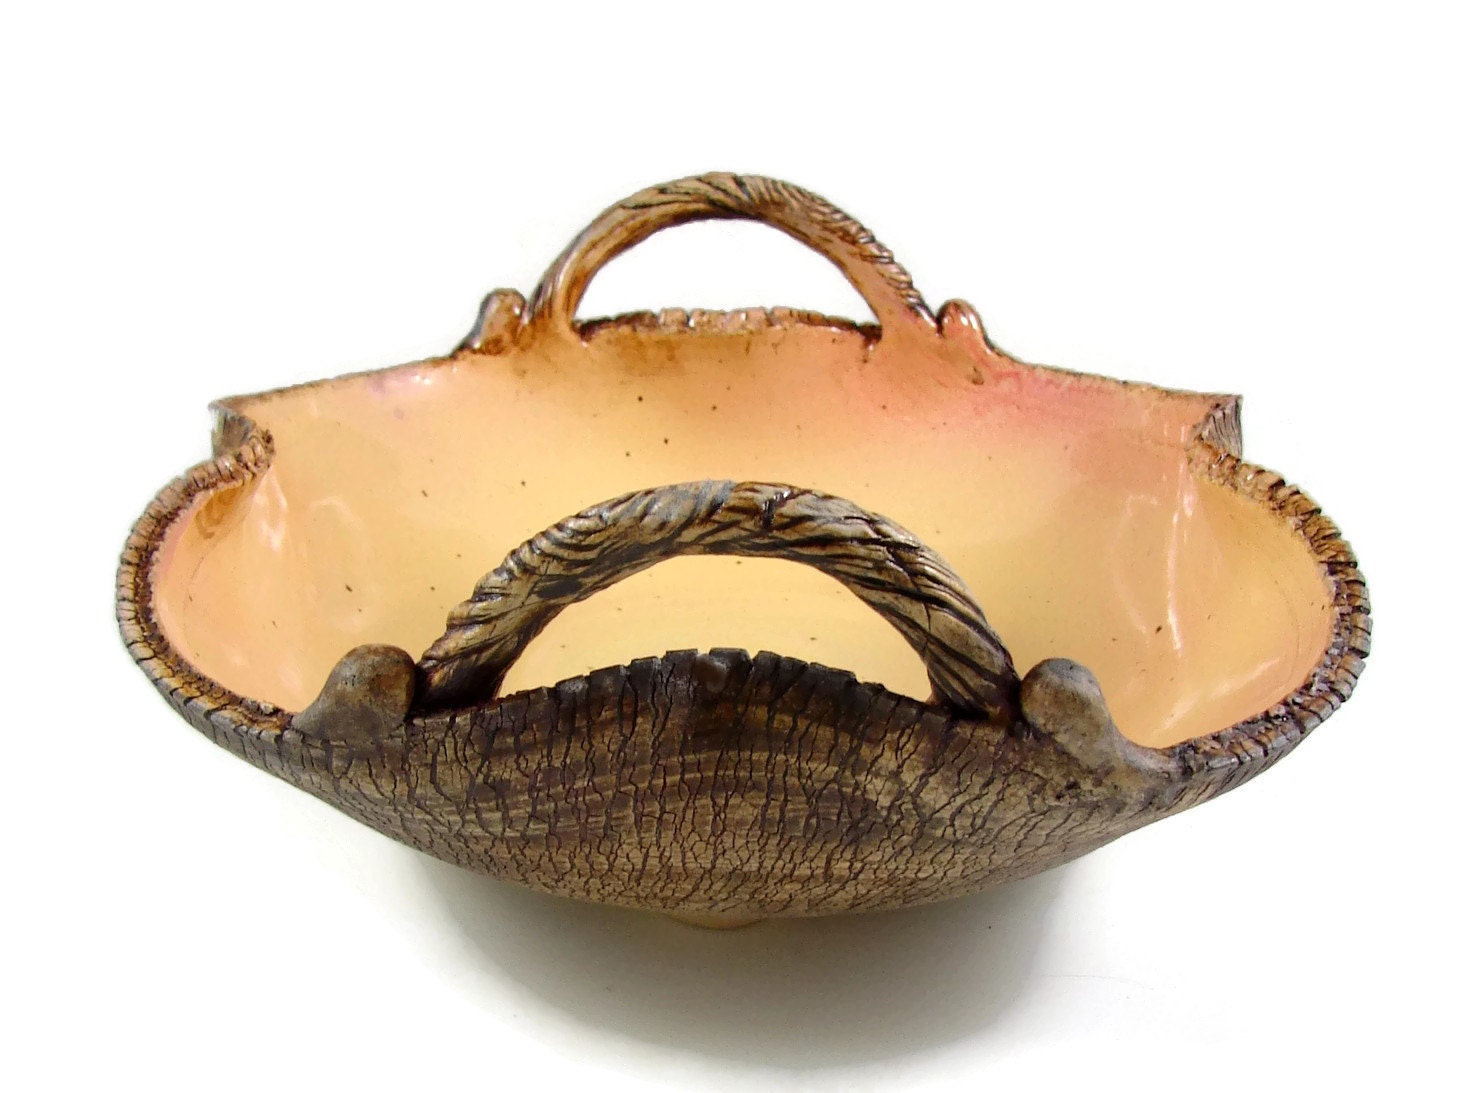 Large Ceramic Serving Bowl With Handles Fall